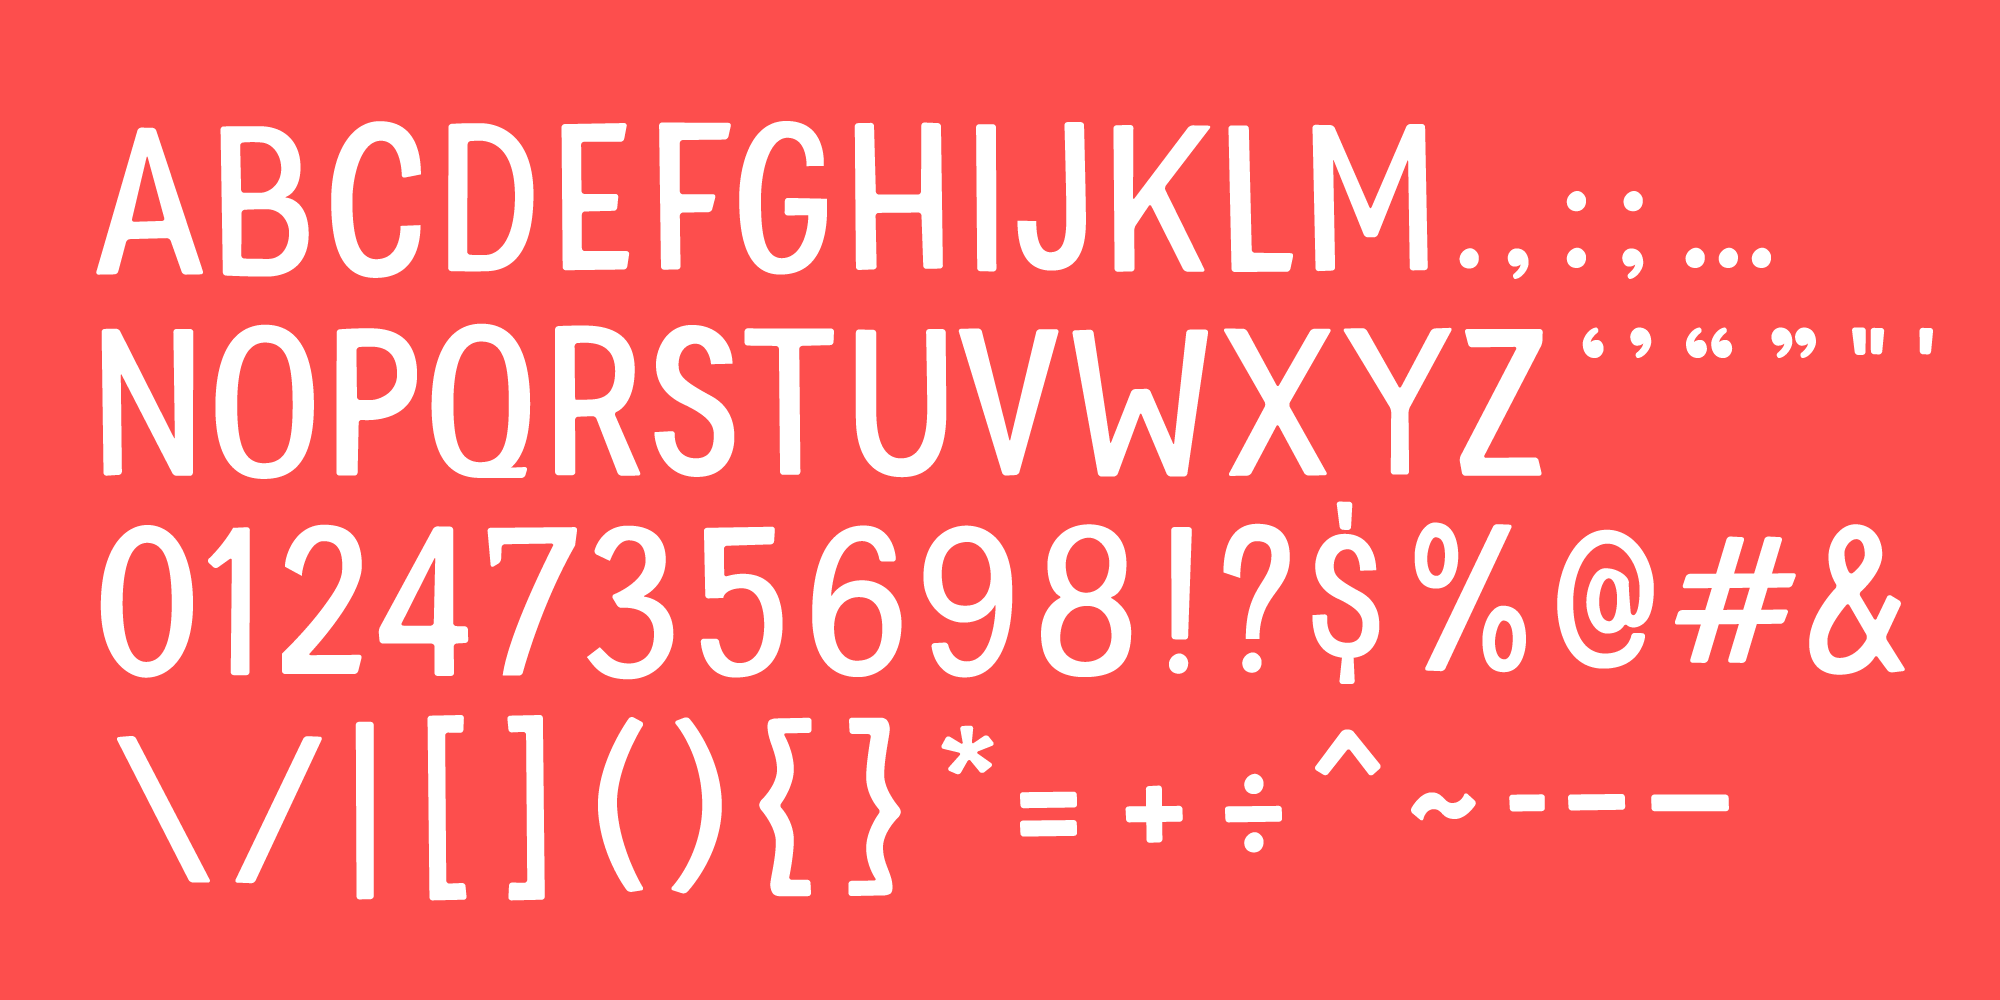 I designed a custom typeface for the I.C.Y. Program. Its rough edges and imperfections give it ayouthful character.